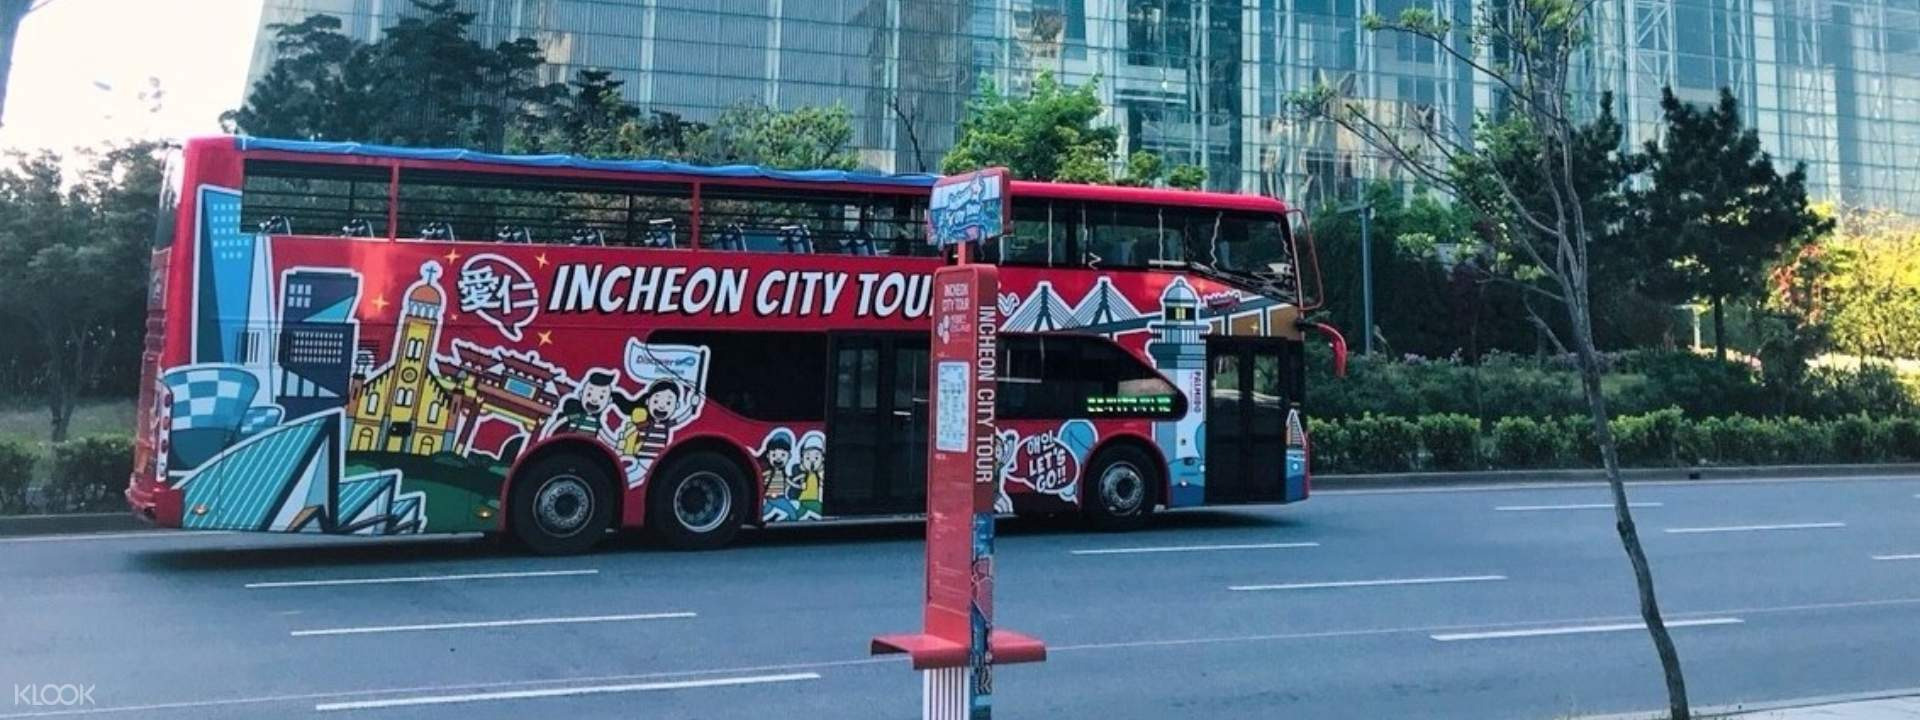 Hop-On/Hop-Off City Bus Sightseeing Trip in Incheon, South